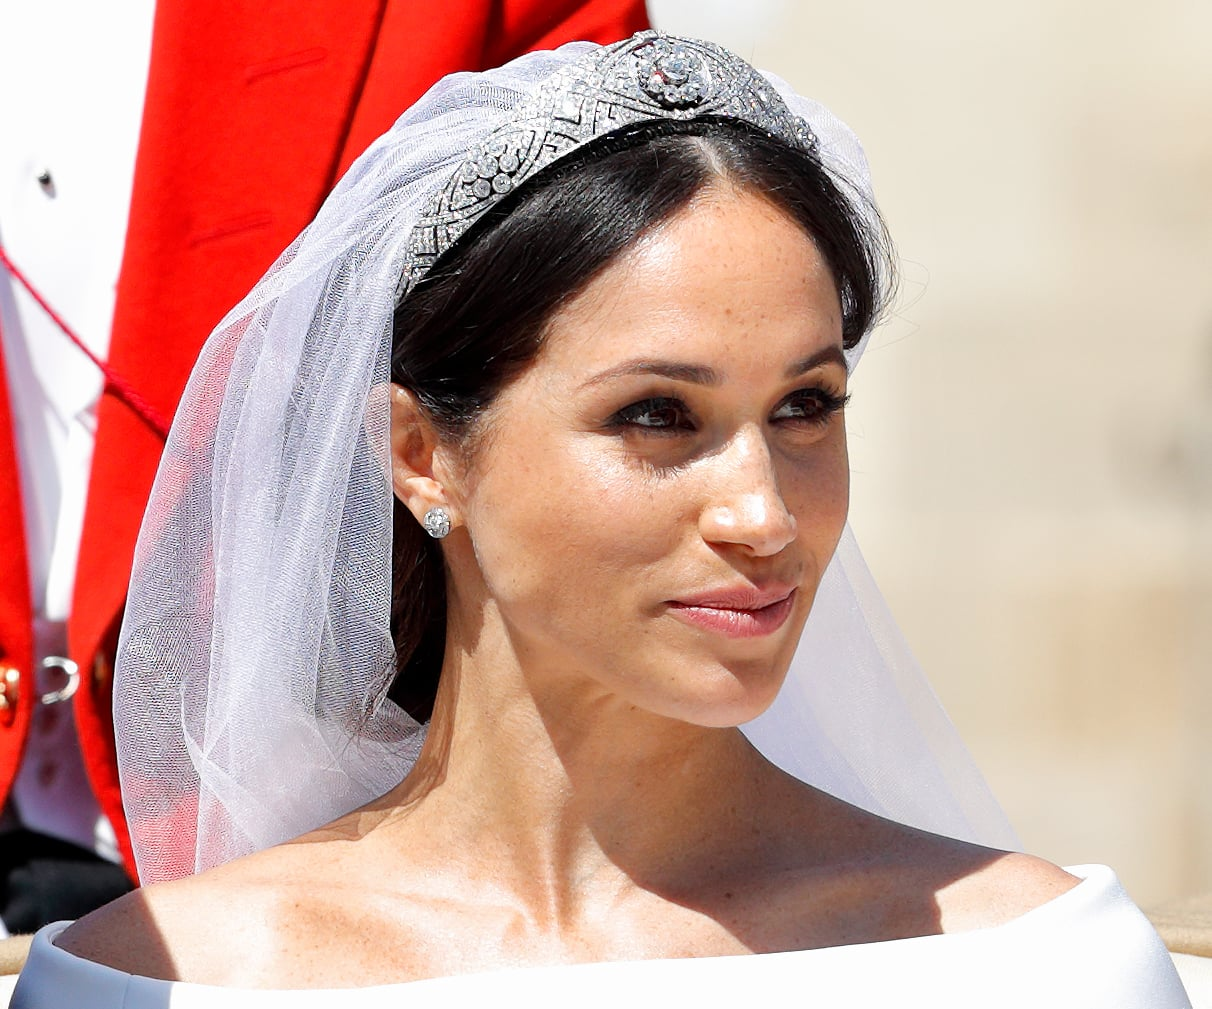 WINDSOR, UNITED KINGDOM - MAY 19: (EMBARGOED FOR PUBLICATION IN UK NEWSPAPERS UNTIL 24 HOURS AFTER CREATE DATE AND TIME) Meghan, Duchess of Sussex travels in an Ascot Landau carriage as she & Prince Harry, Duke of Sussex begin their procession through Windsor following their wedding at St George's Chapel, Windsor Castle on May 19, 2018 in Windsor, England. Prince Henry Charles Albert David of Wales marries Ms. Meghan Markle in a service at St George's Chapel inside the grounds of Windsor Castle. Among the guests were 2200 members of the public, the royal family and Ms. Markle's Mother Doria Ragland. (Photo by Max Mumby/Indigo/Getty Images)